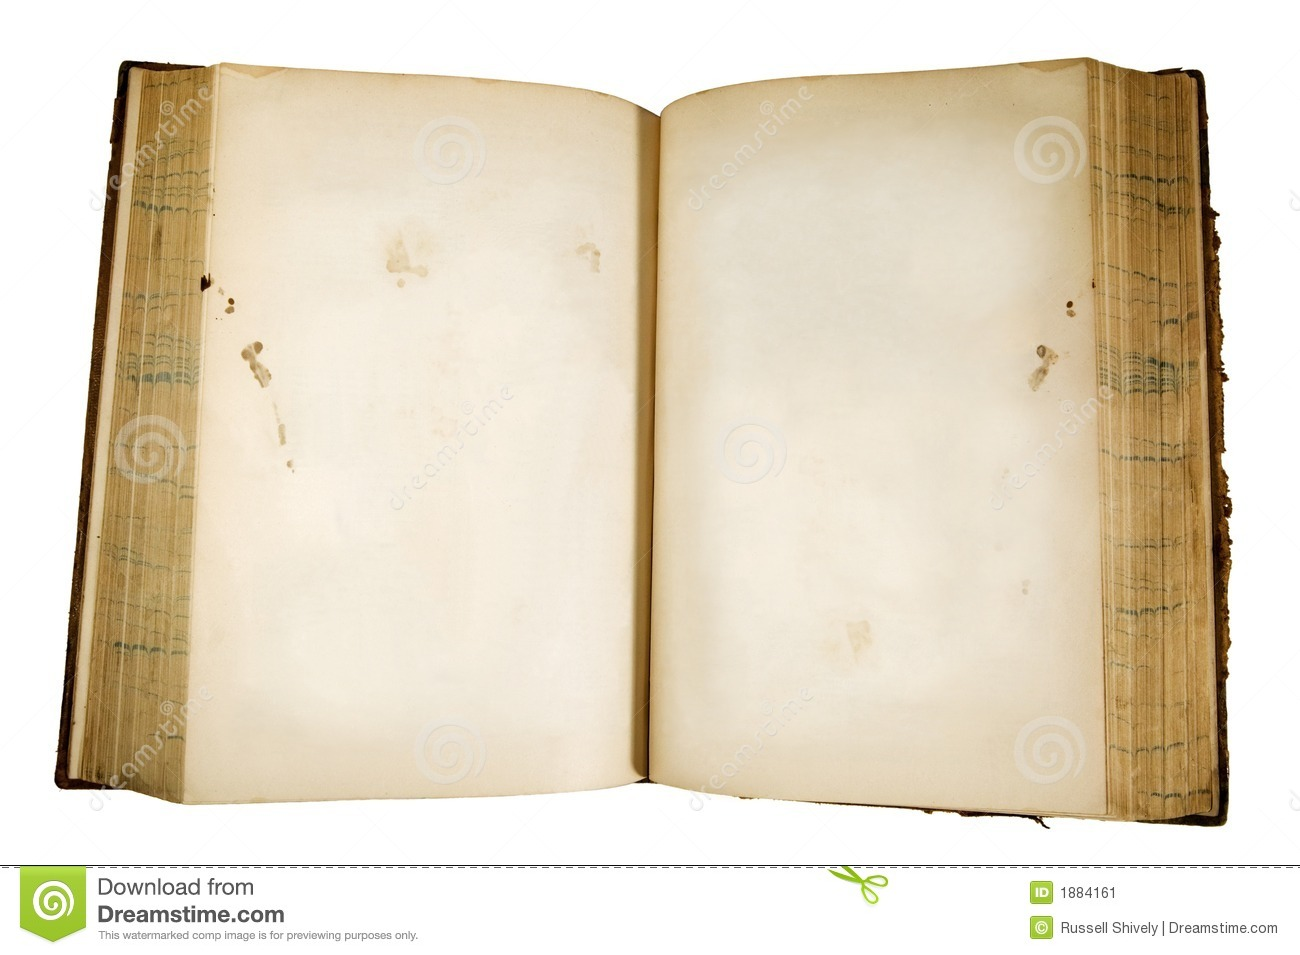 Old Open Book Stock Image - Image: 1884161